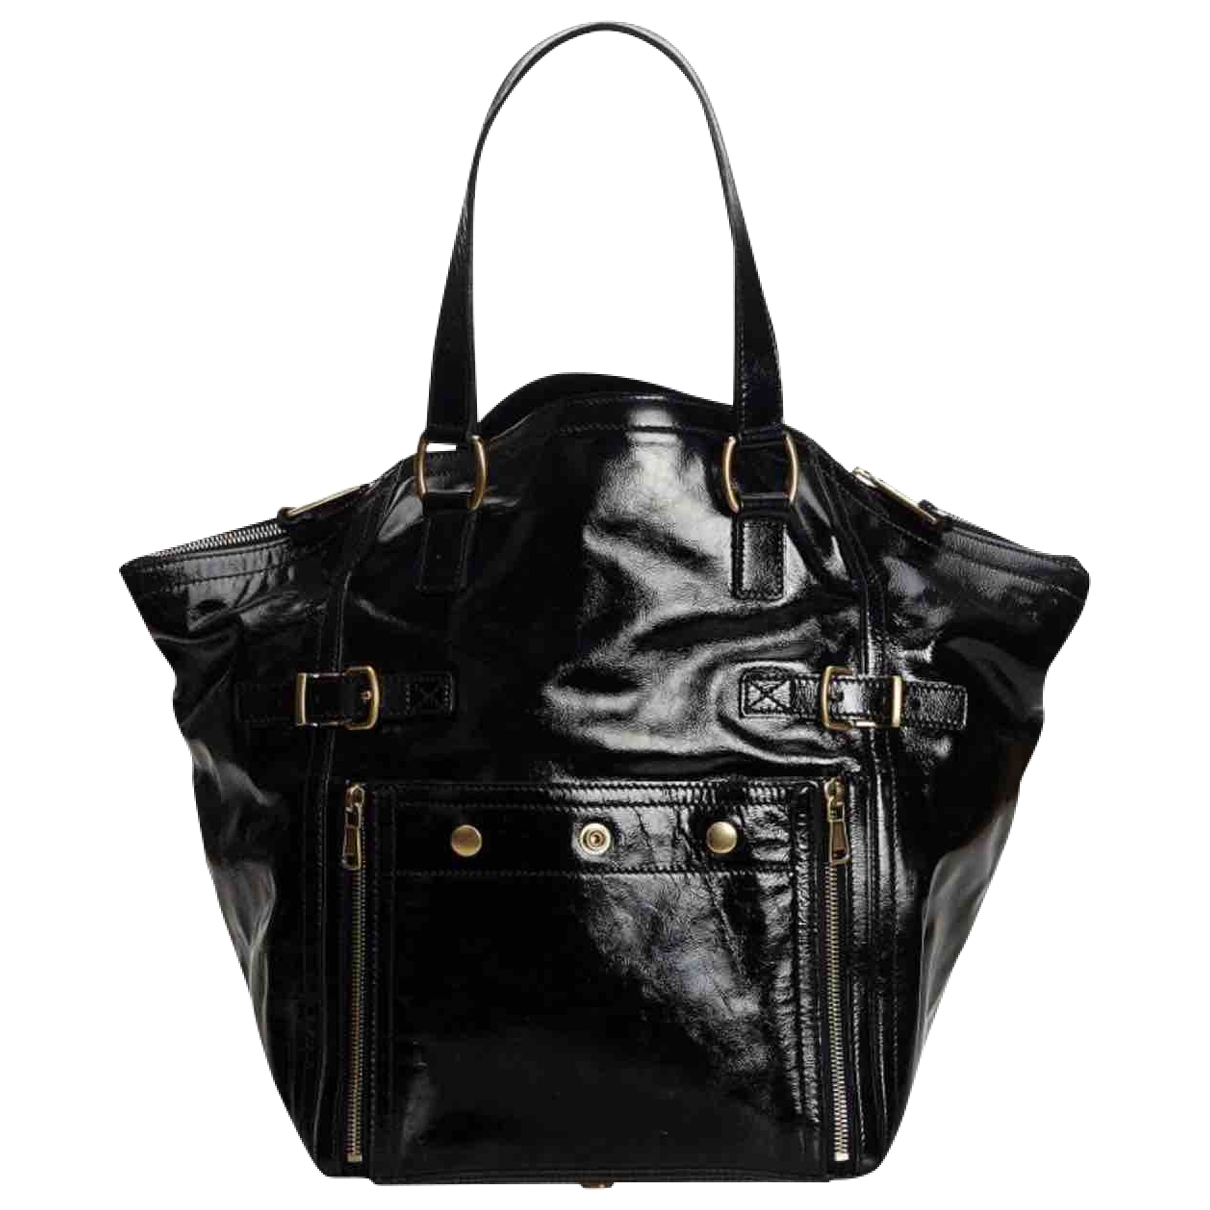 Yves Saint Laurent \N Handtasche in  Schwarz Lackleder